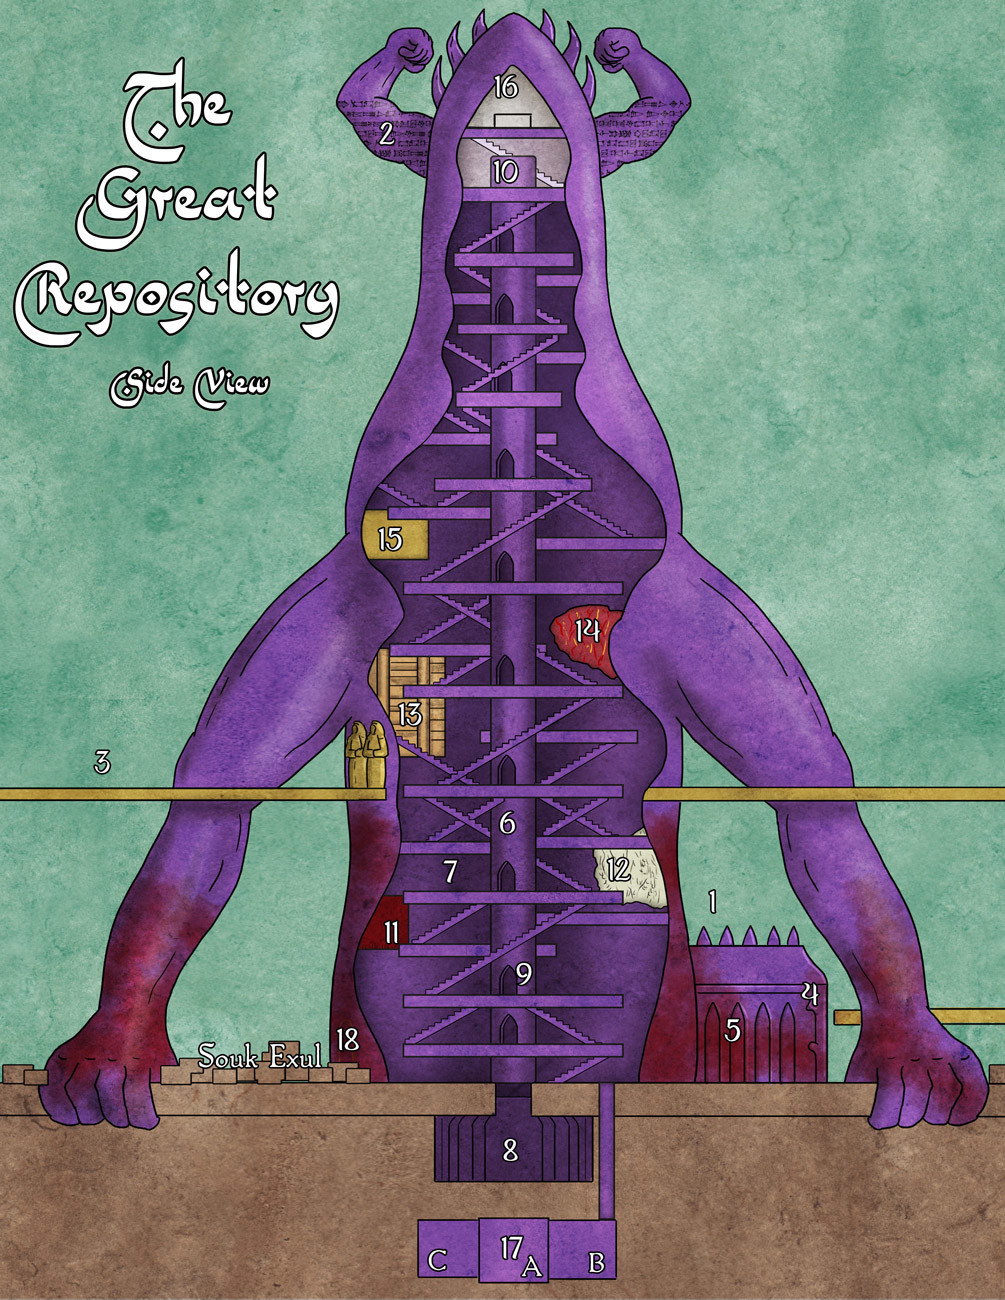 The Great Repository